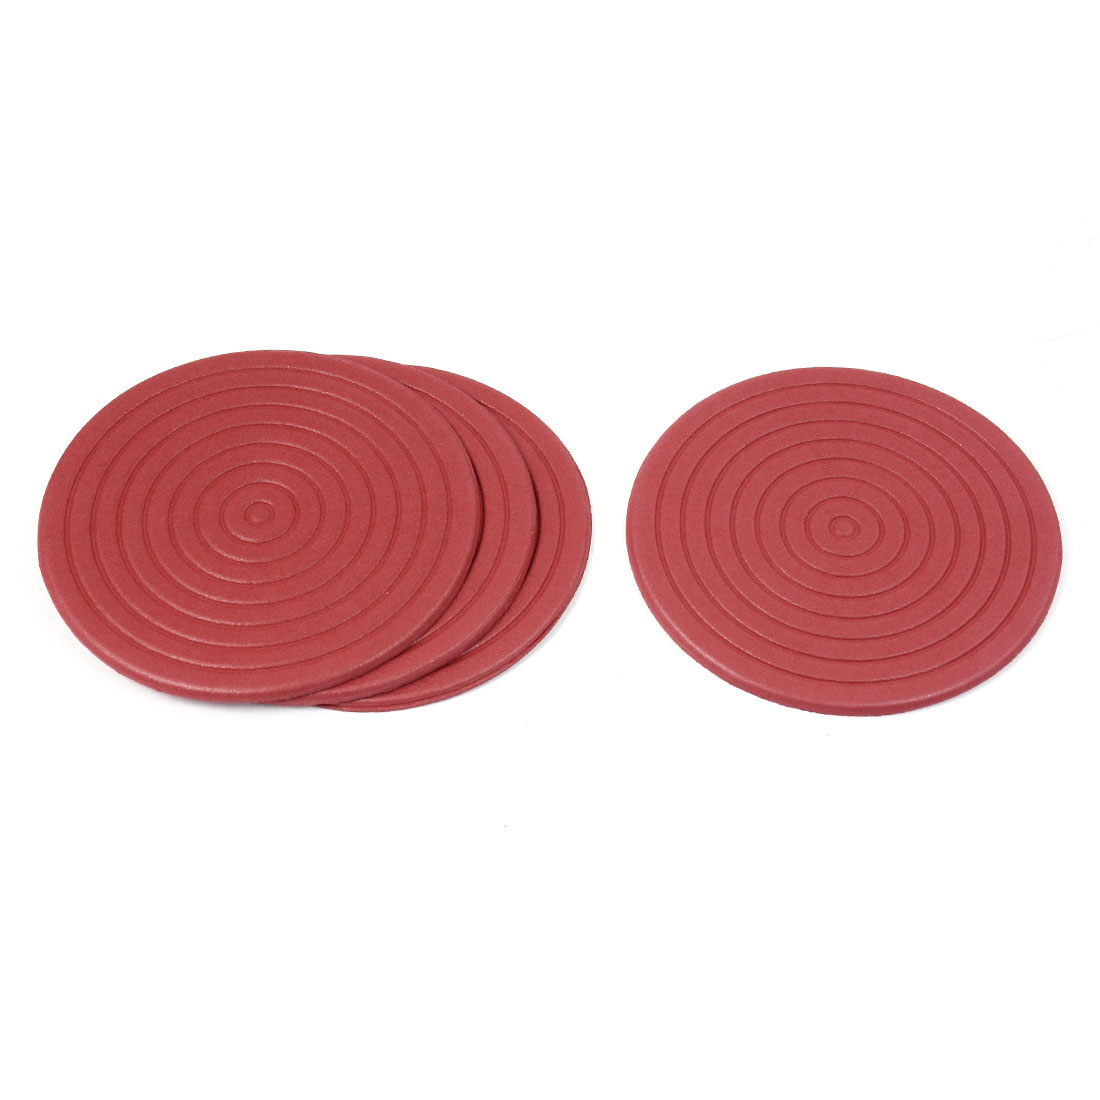 4 Pcs Mosquito Coil Shaped Foam Antislip Heat Resistant Cup Mats Pads Red